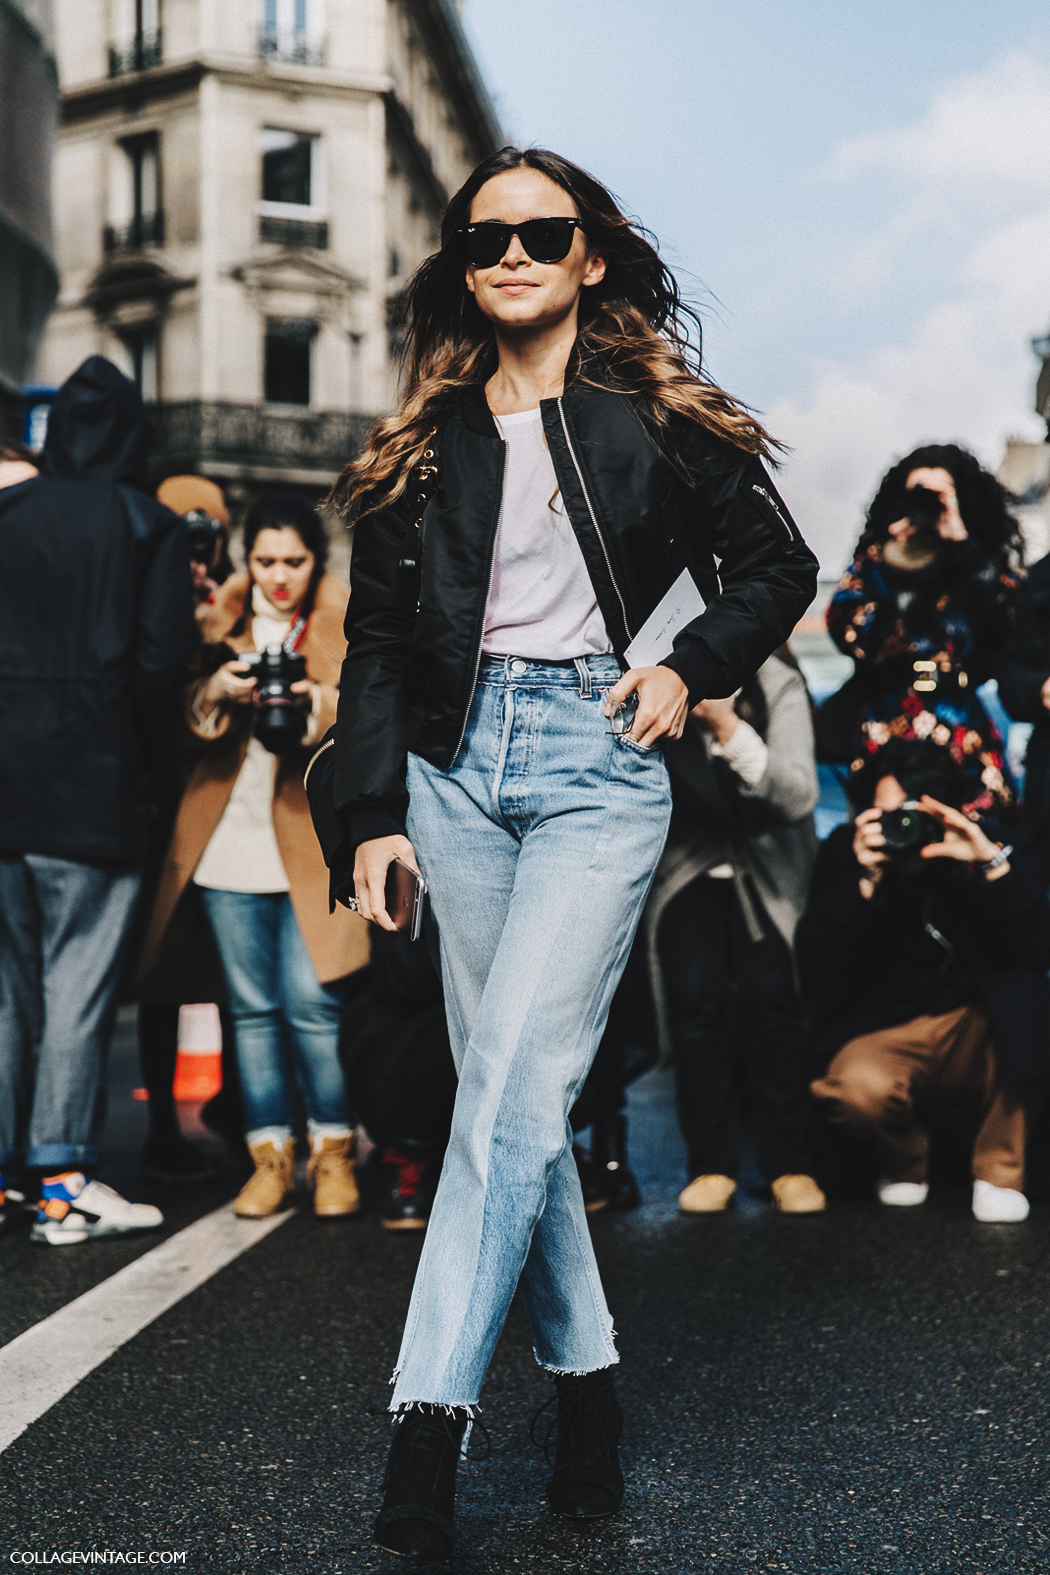 PFW-Paris_Fashion_Week_Fall_2016-Street_Style-Collage_Vintage-Miroslava_Duma-Vetements-Jeans-Backpack-Bomber-8